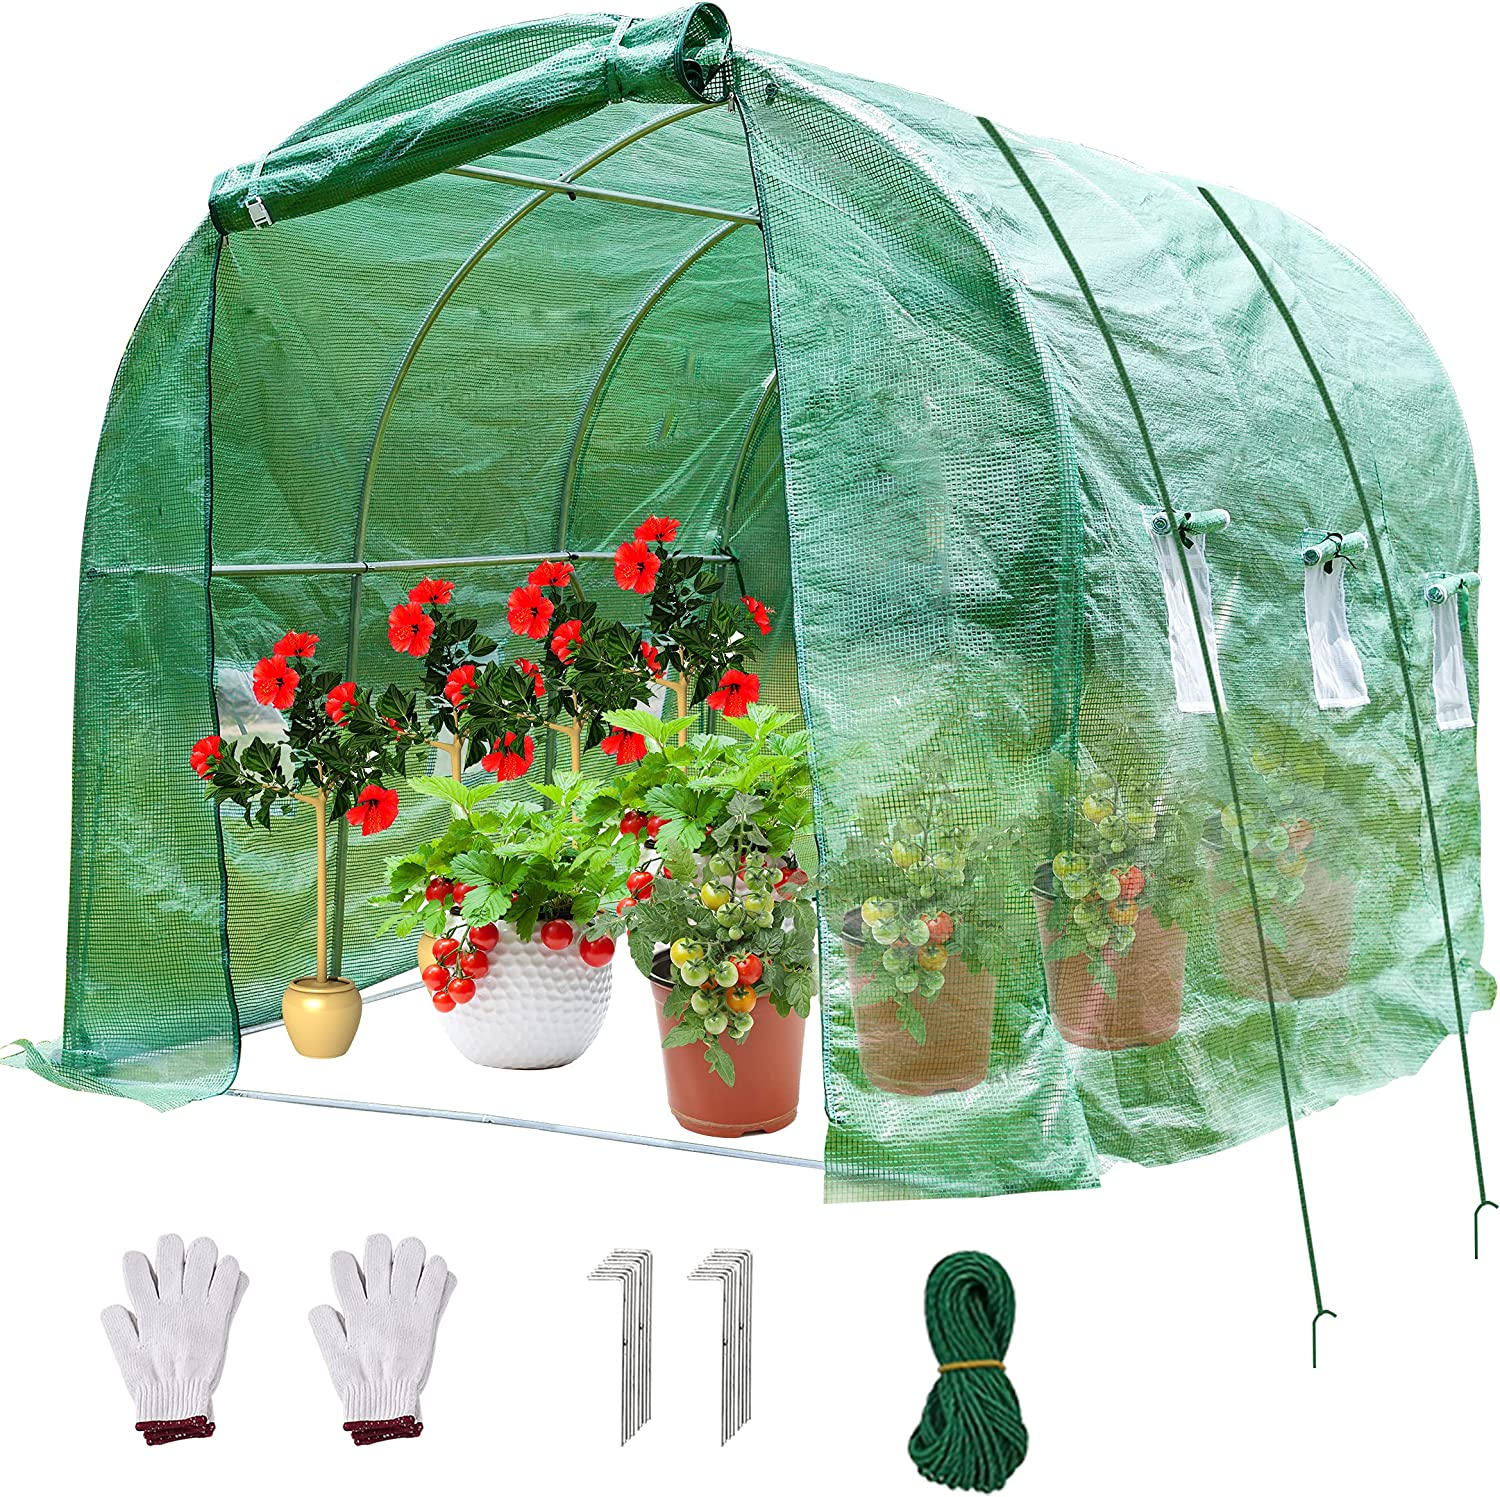 SUNGIFT Portable Greenhouse 10' x 7' x 7' Large Walk-in Green Garden Plant Hot Green Houses Tunnel Tent, Greenhouses for Outdoors with 2 Zippered Doors, 6 Screen Windows, 4 Ropes and 2 Gloves